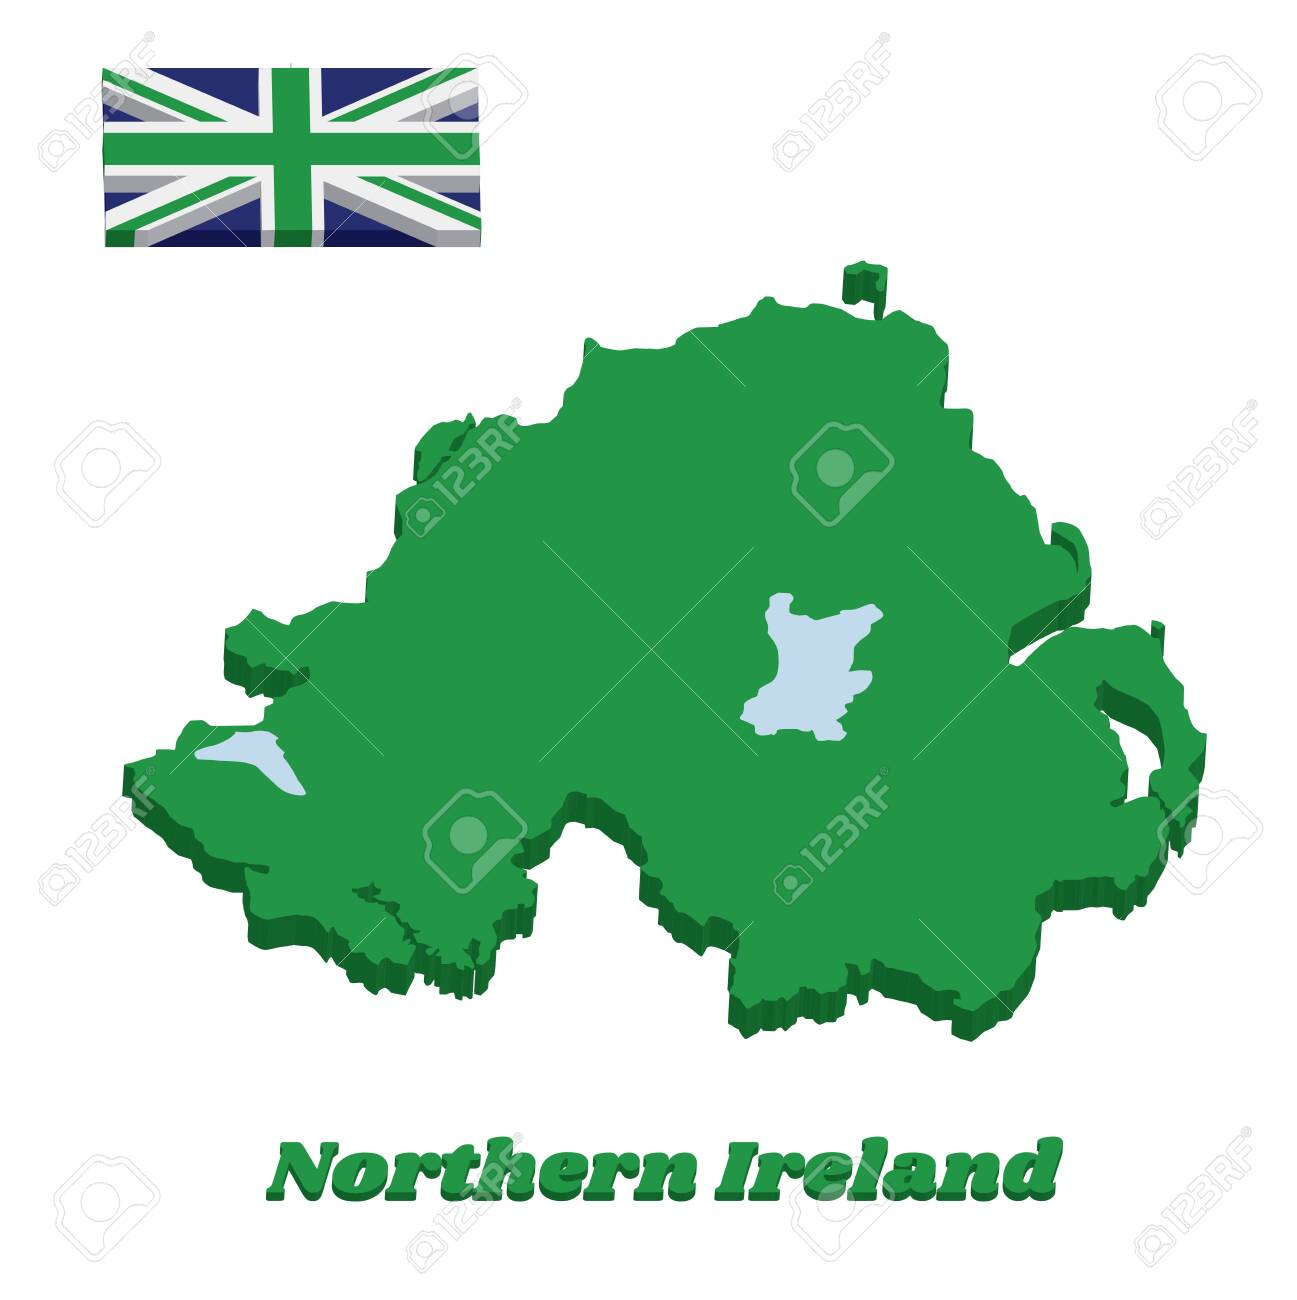 Map Of Ireland 3d.3d Green Map Outline And Flag Of Northern Ireland Green Union